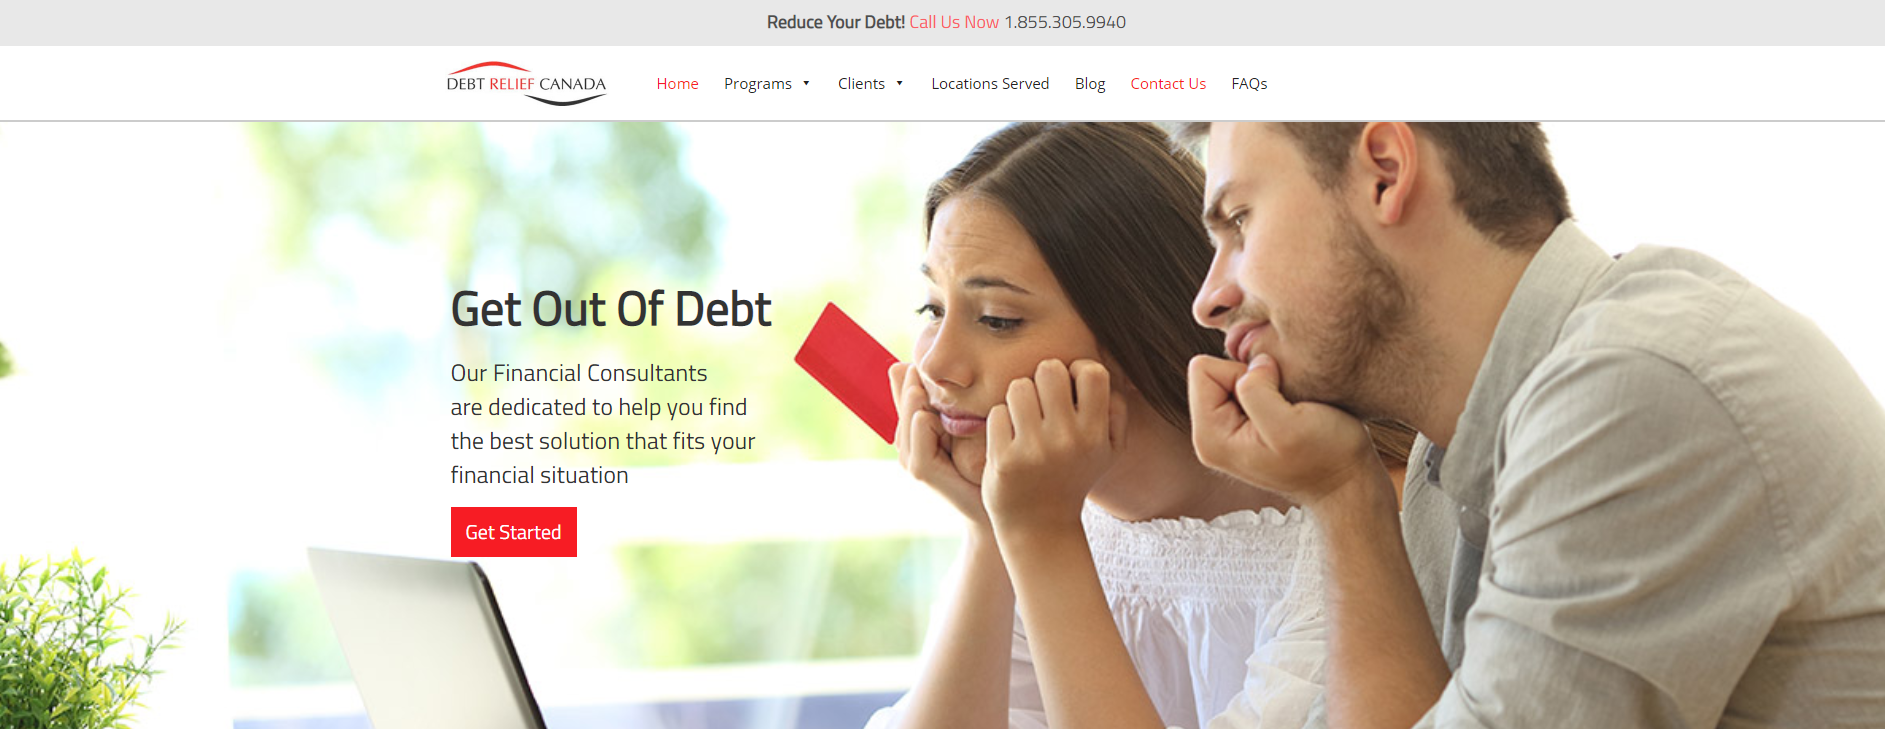 Debt relief website example